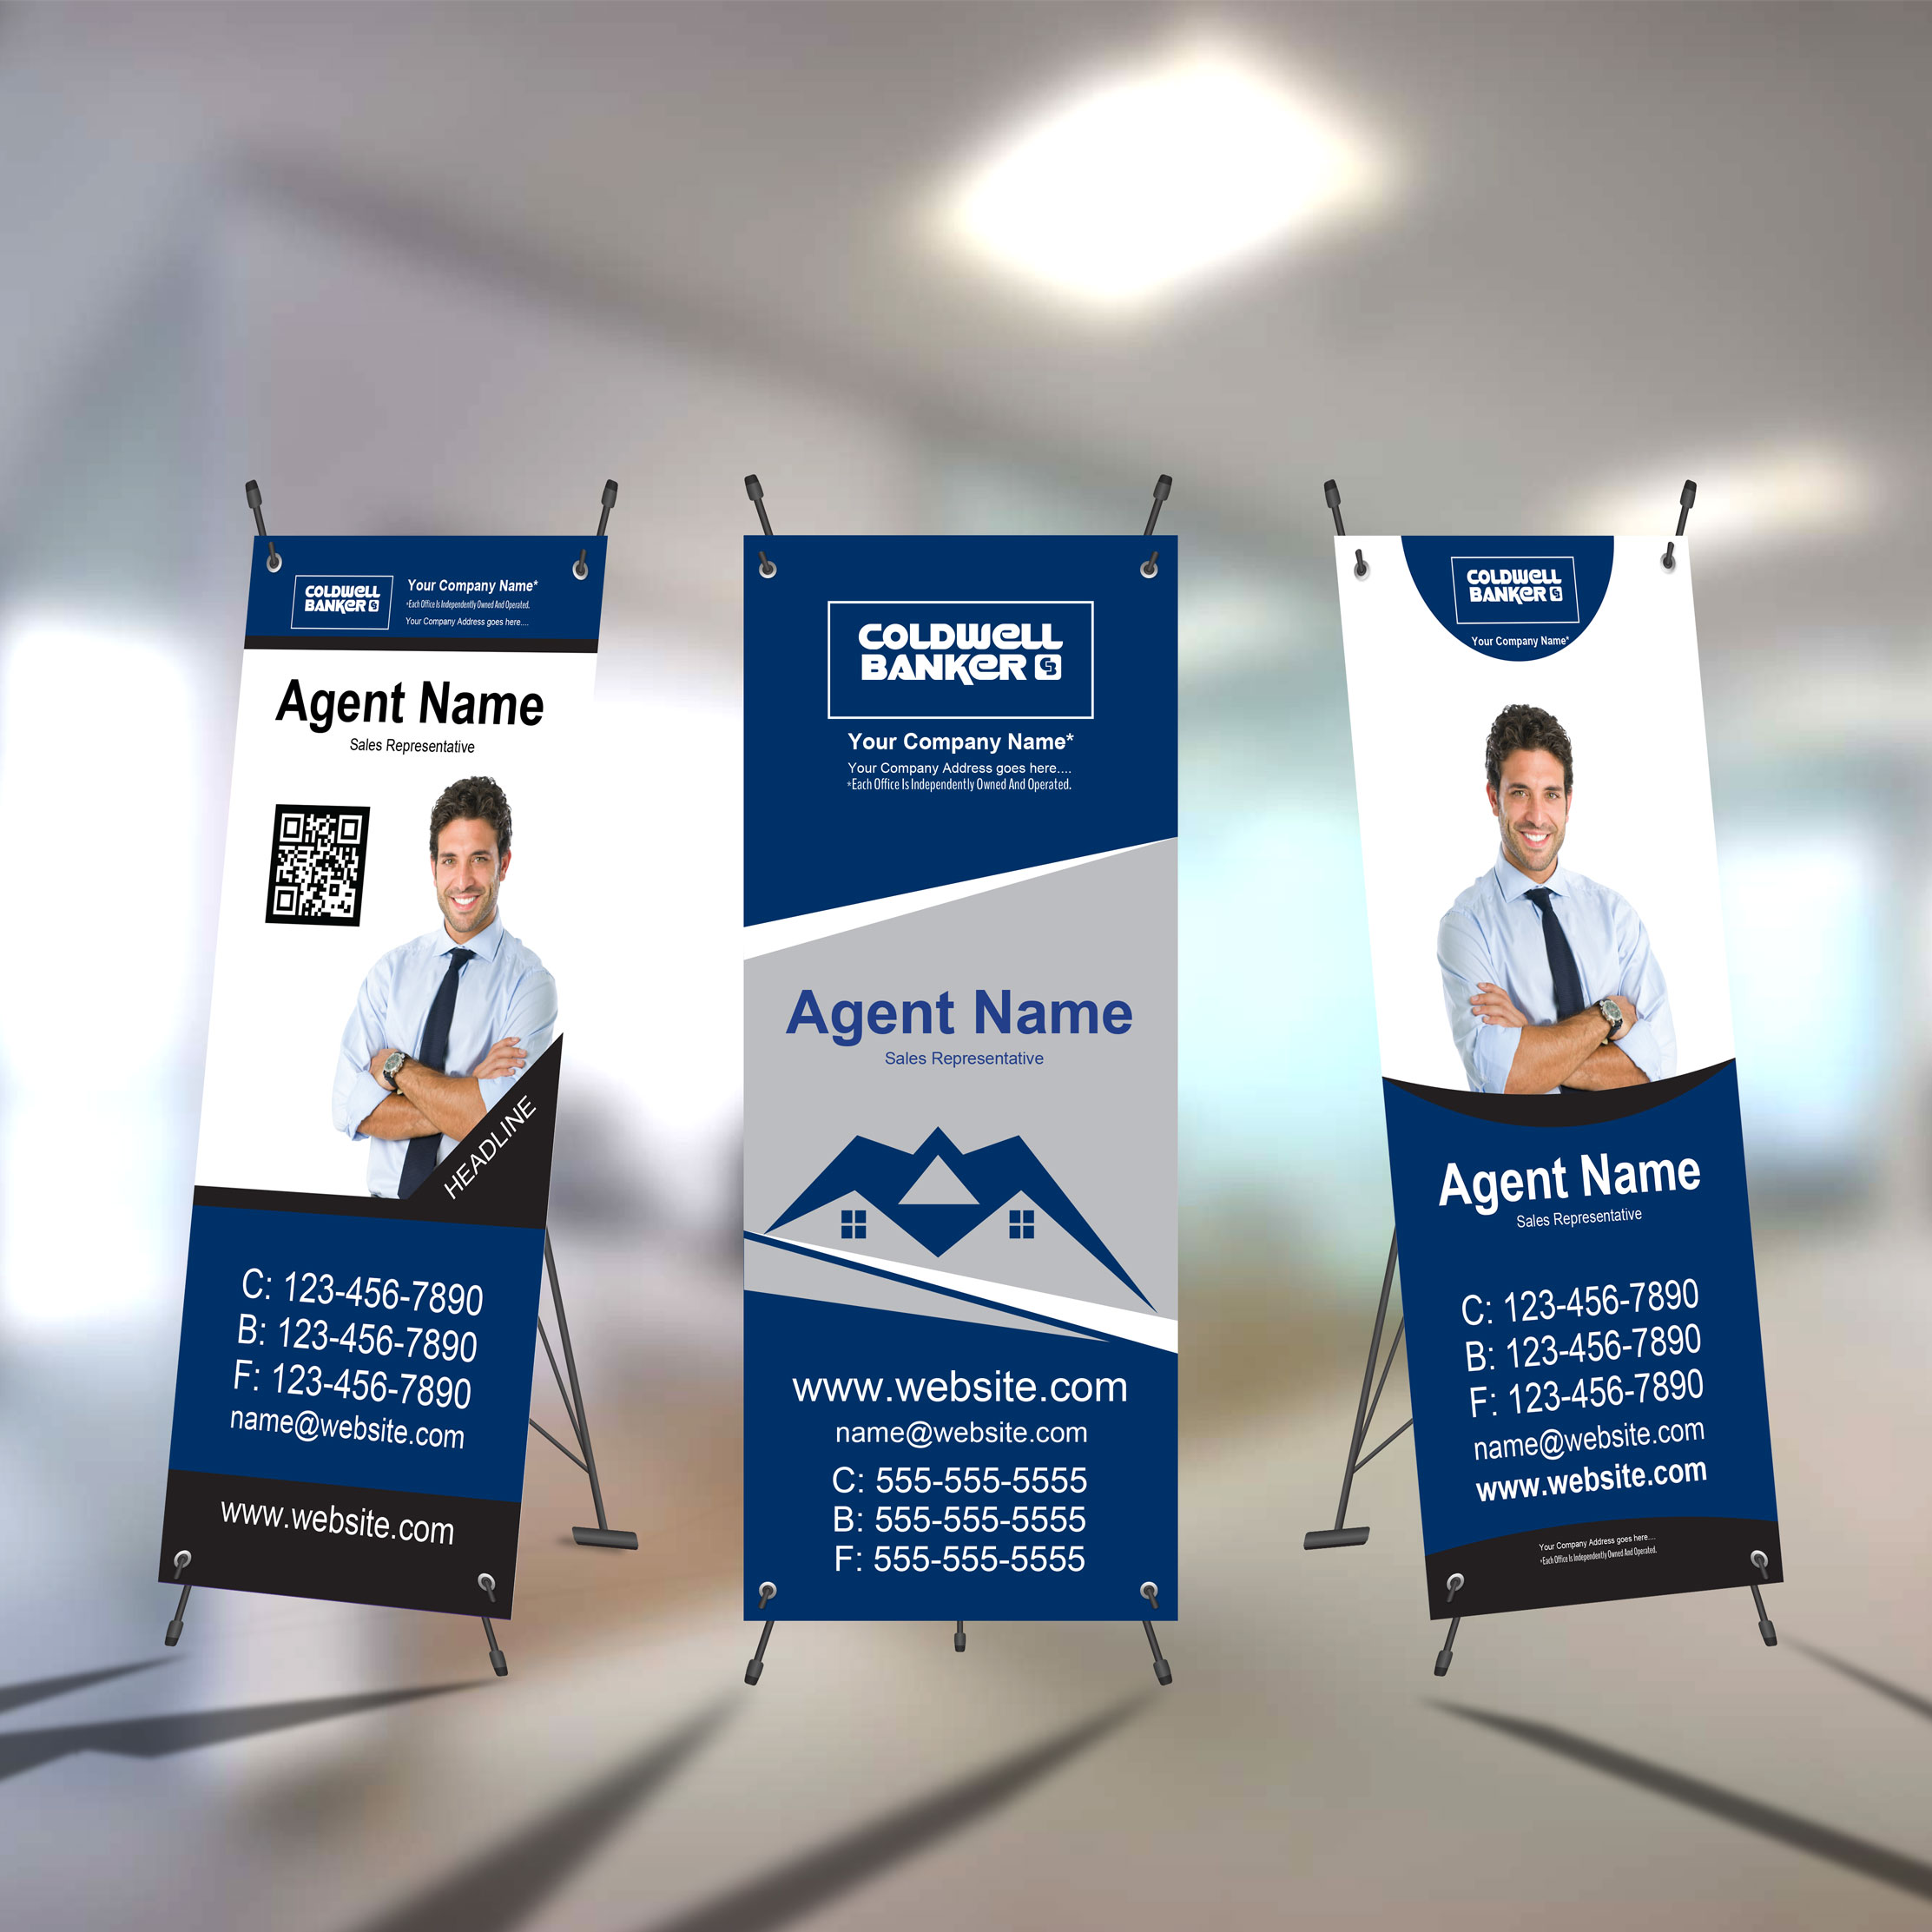 X-Frame Banners<br><br> - Coldwell Banker